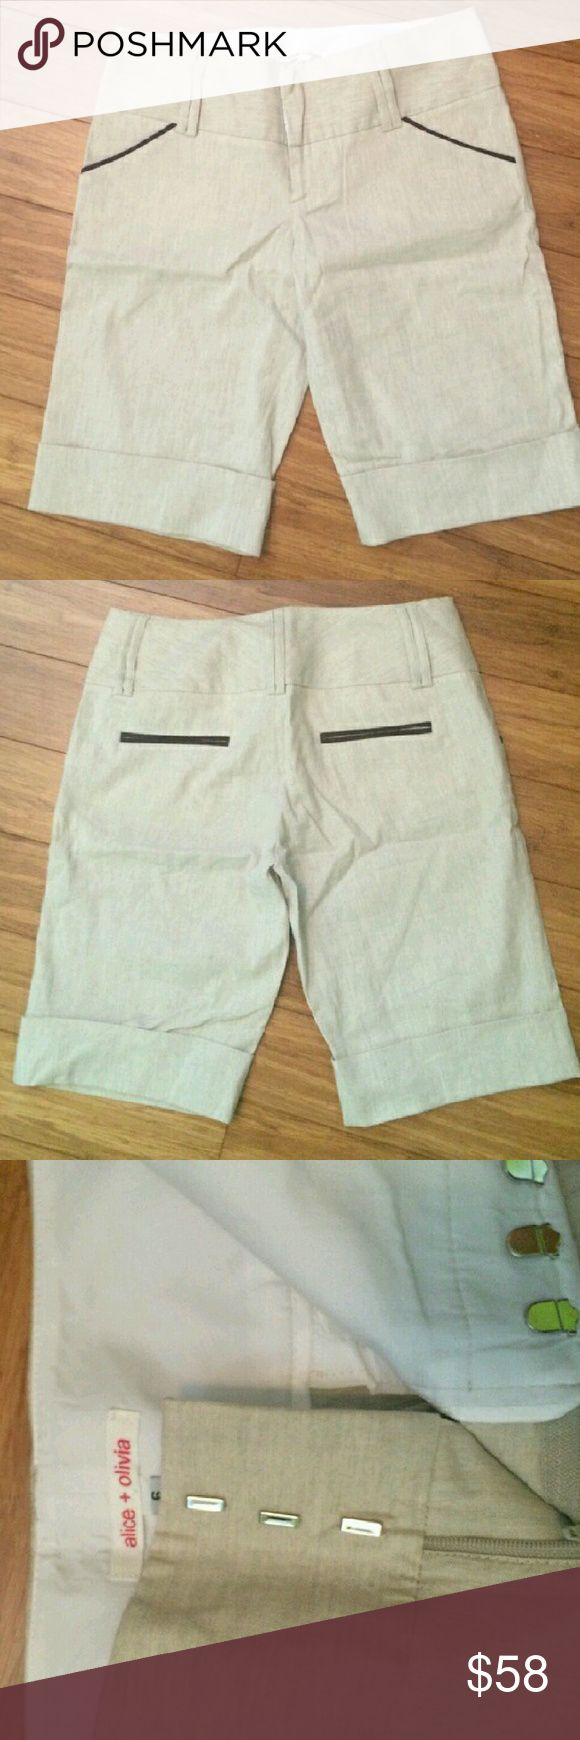 Alice + Olivia Bermuda beige shorts Beige shorts with cuffs. Linen material. Perfect condition Alice + Olivia Shorts Bermudas